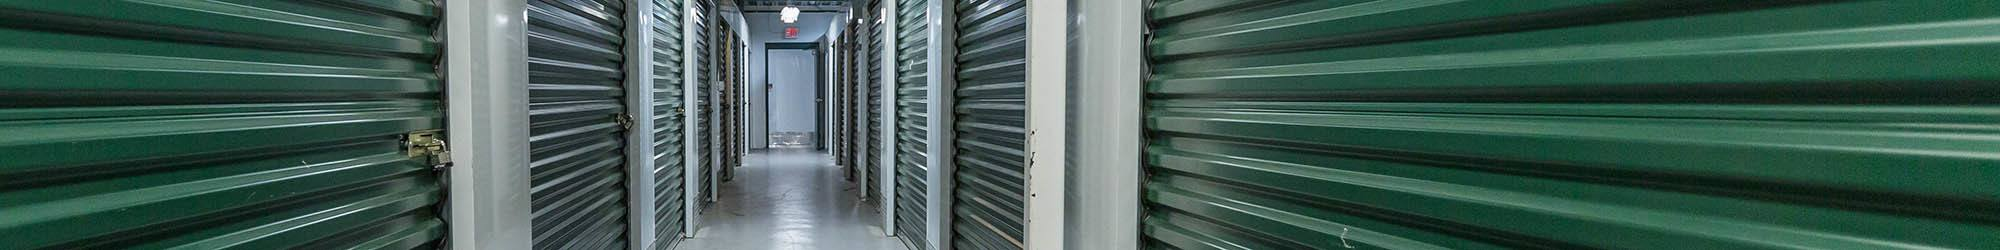 Climate controlled storage at Superior Self Storage in Rancho Cordova